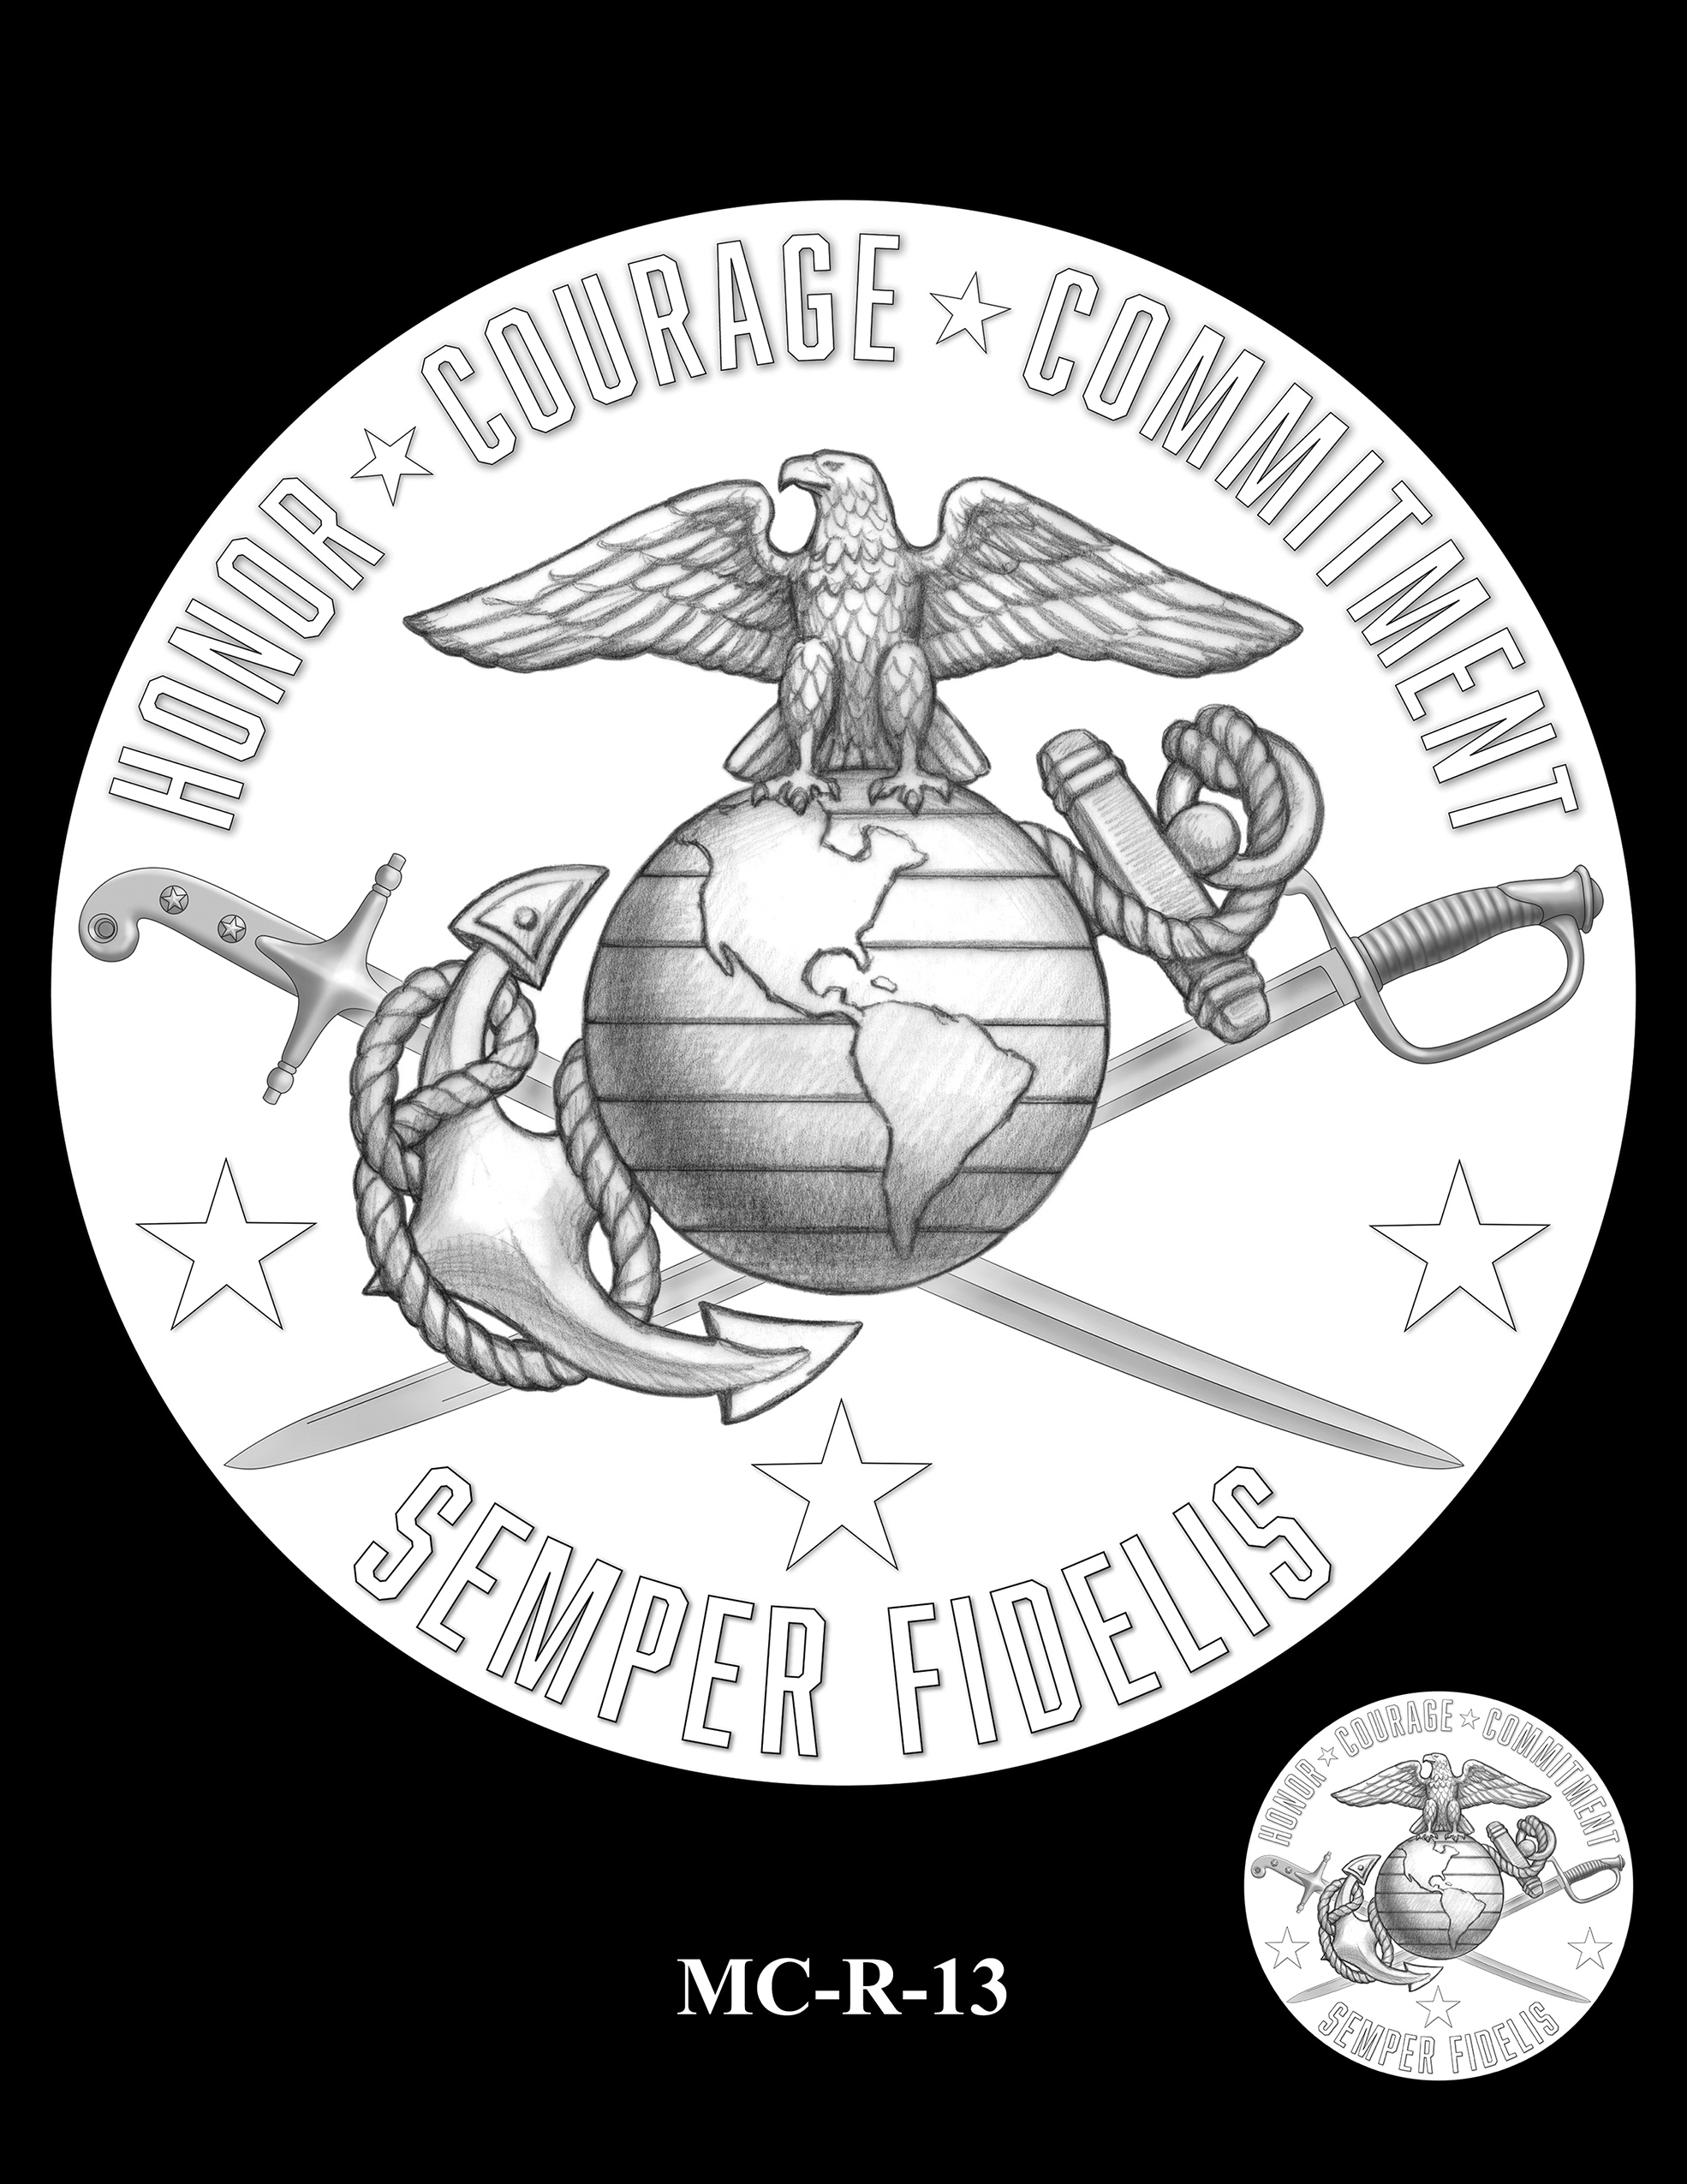 MC-R-13 -- United States Marine Corps Silver Medal